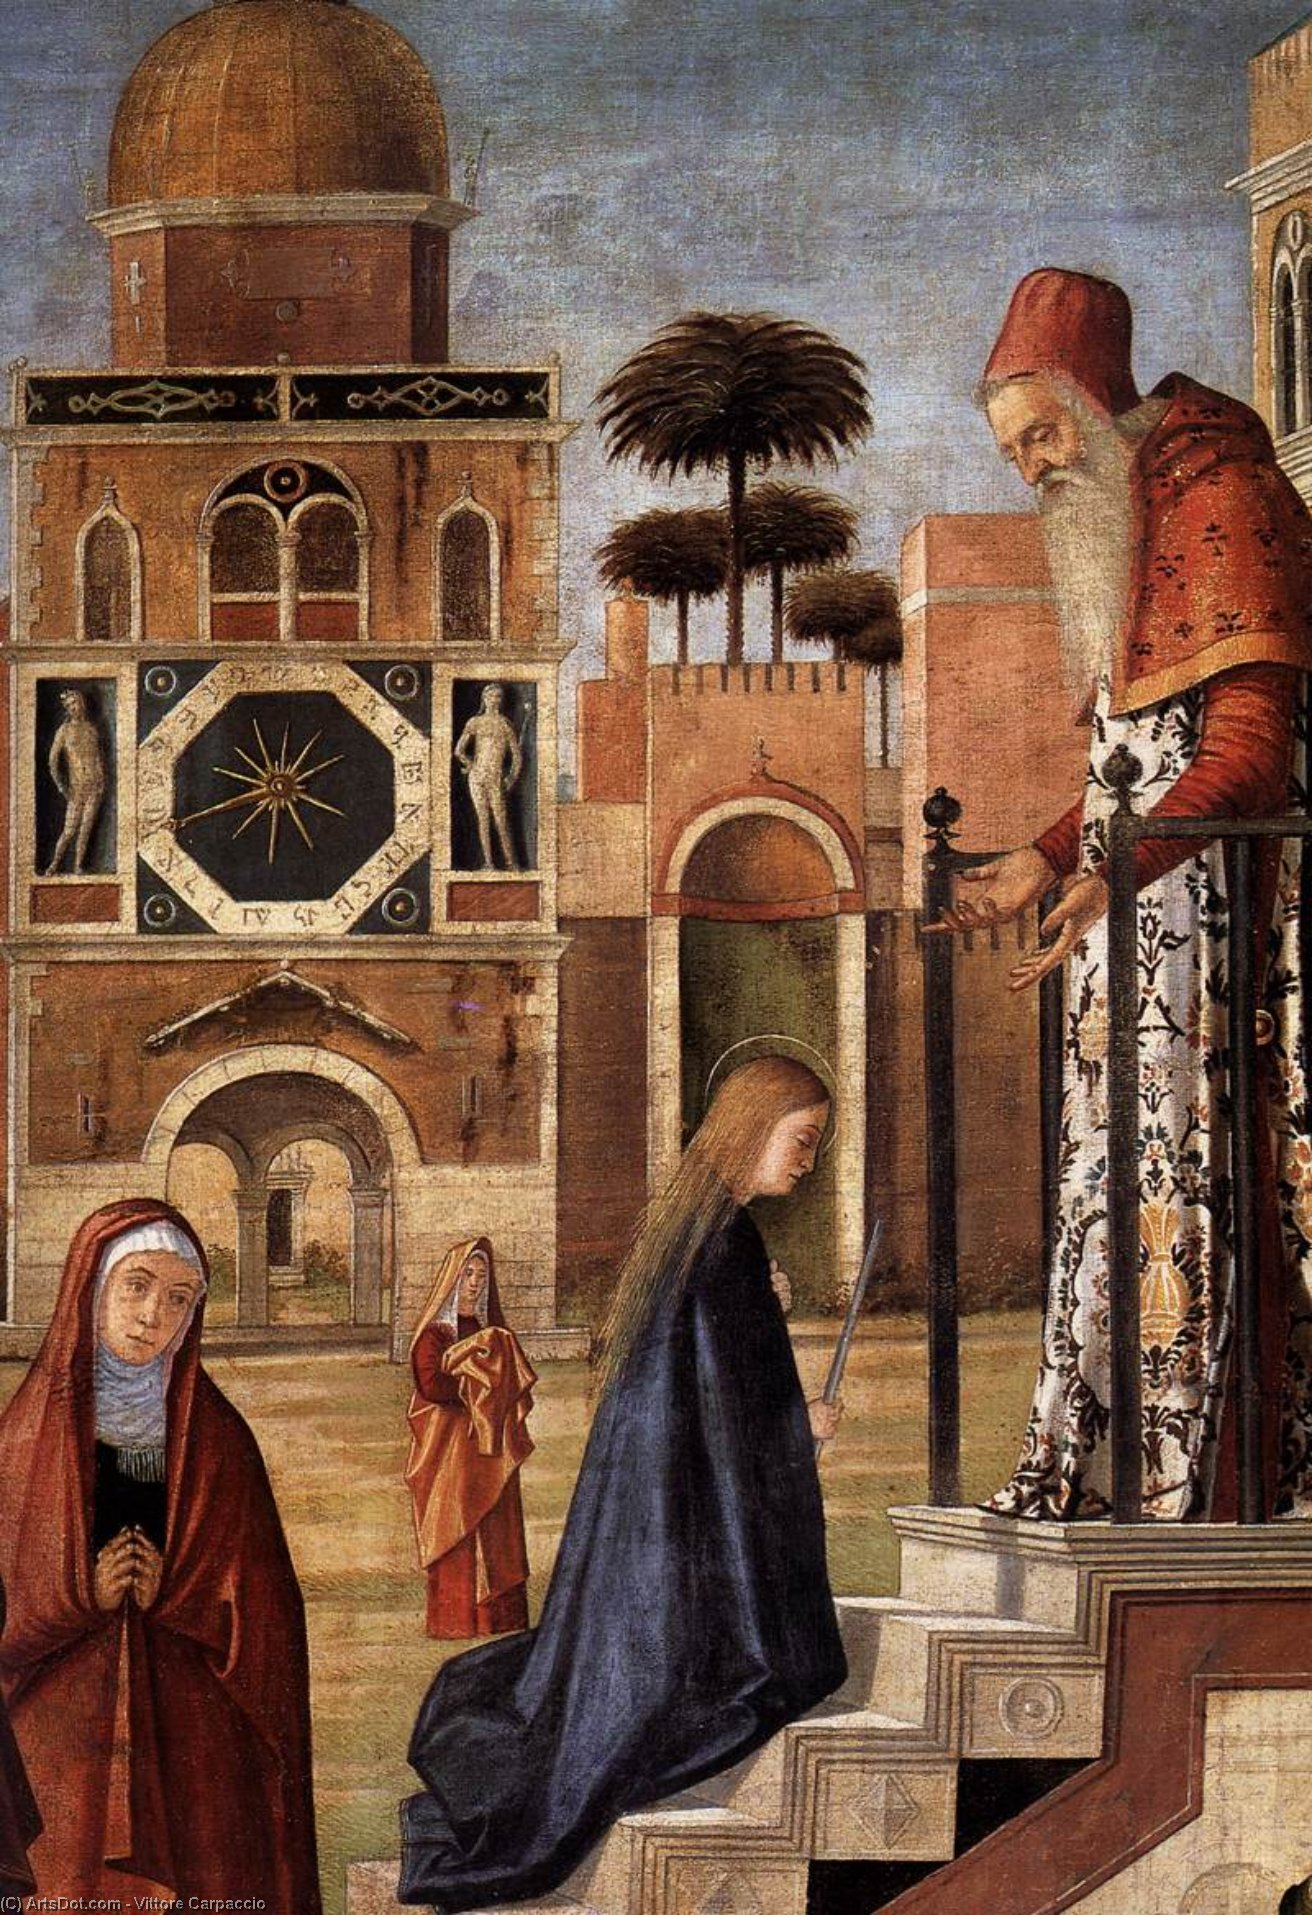 a biography of vittore carpaccio Find out more about the history of vittore carpaccio, including interesting facts, large resolution images, historical features and more biography and information venetian painter of the renaissance carpaccio was born in venice ca.